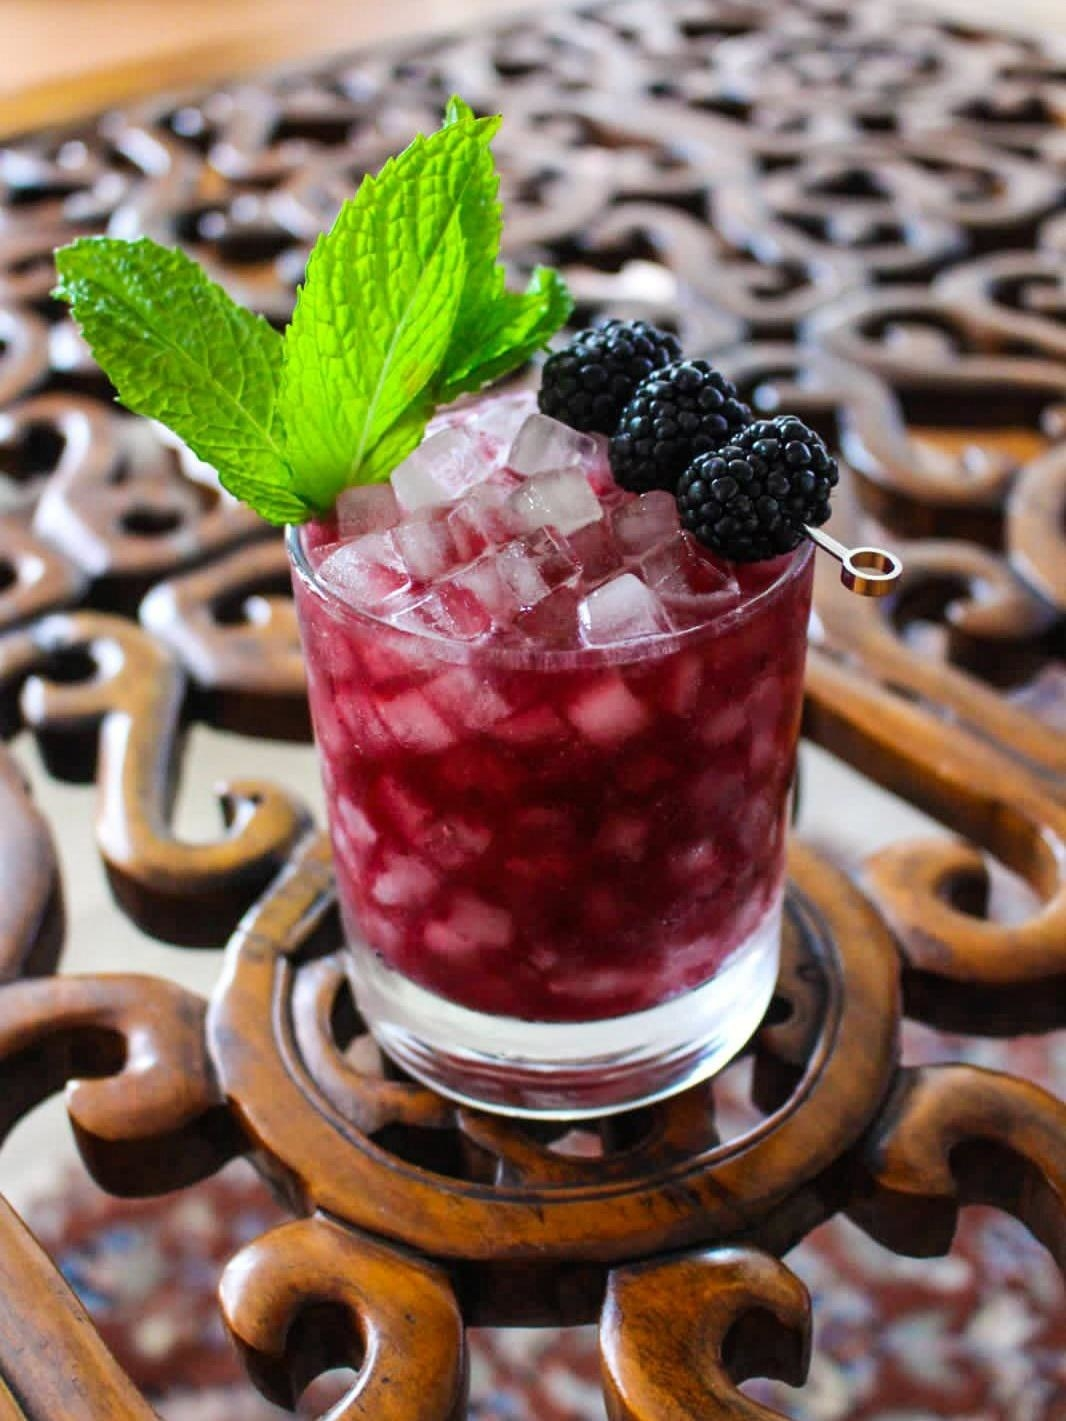 A blackberry julep mocktail garnished with blackberries and mint.